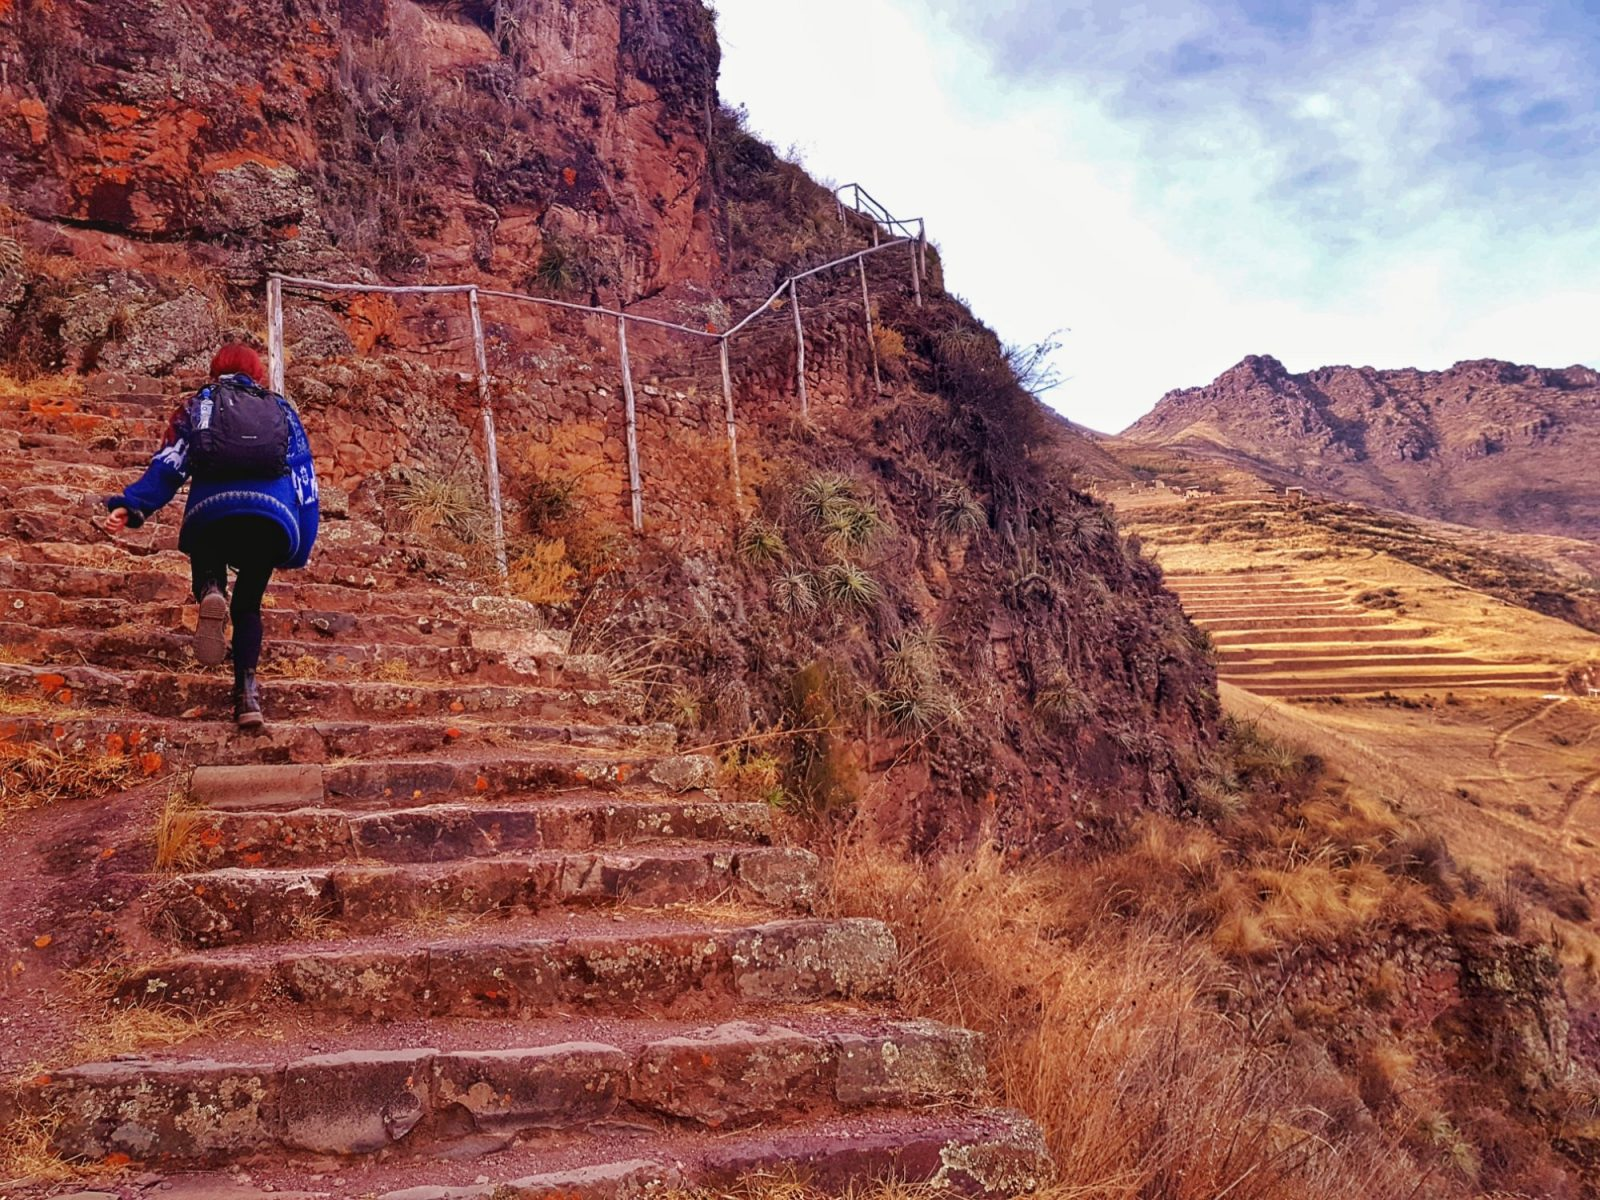 """<img src=""""images/"""" width=""""800"""" height=""""600"""" alt=""""sacred valley - 20171010 160234 011224421356 - Peru: Town Hopping The Sacred Valley"""">"""